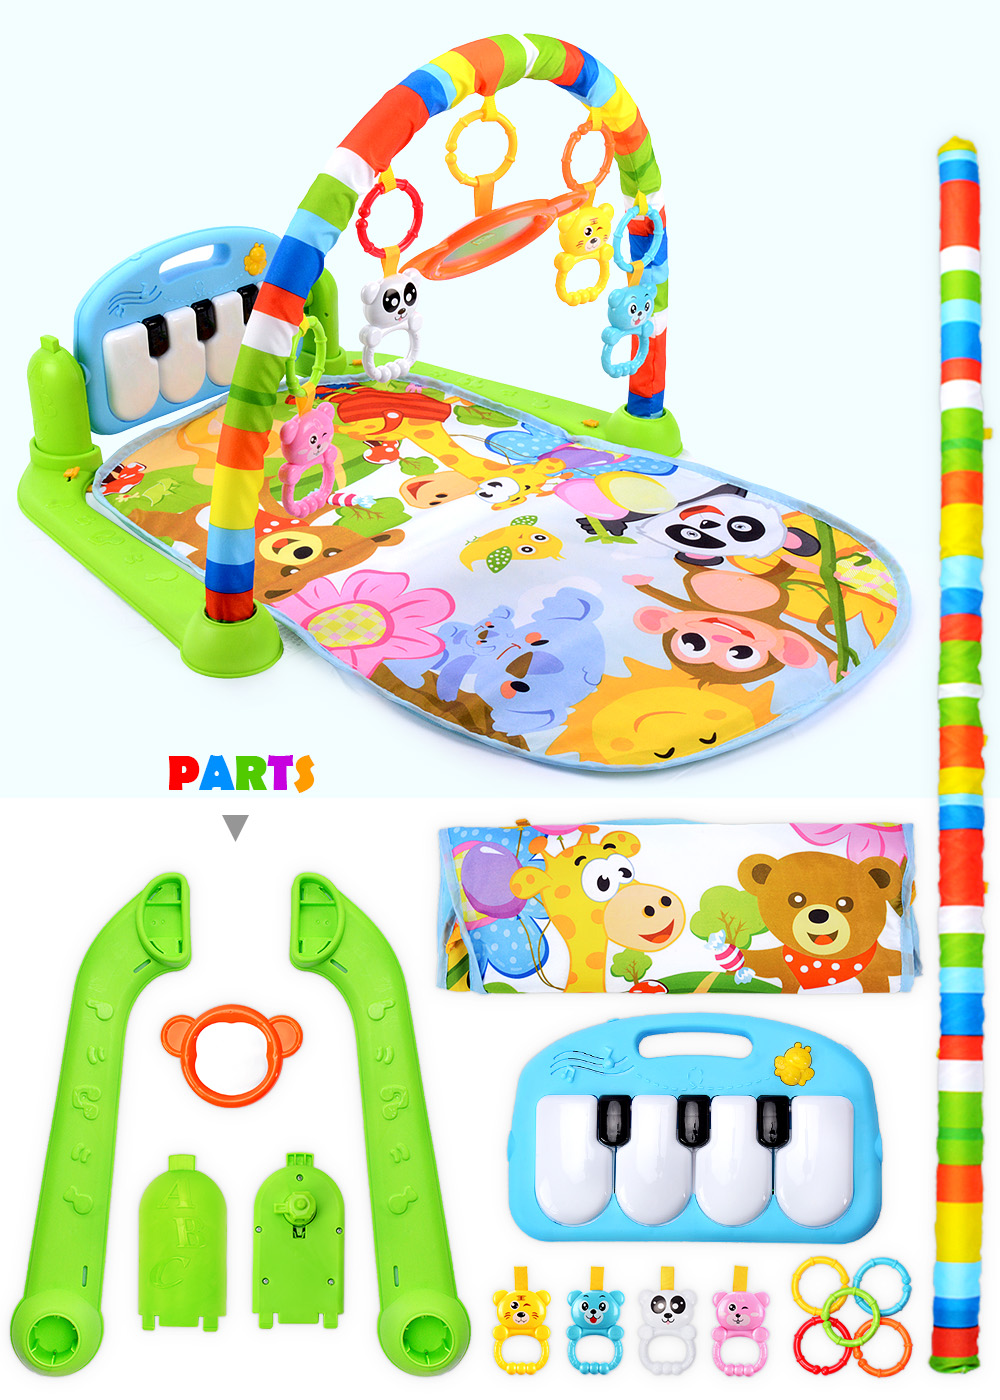 H9233253c708442d1b513b35606550213B 16 Styles Baby Music Rack Play Mat Kid Rug Puzzle Carpet Piano Keyboard Infant Playmat Early Education Gym Crawling Game Pad Toy